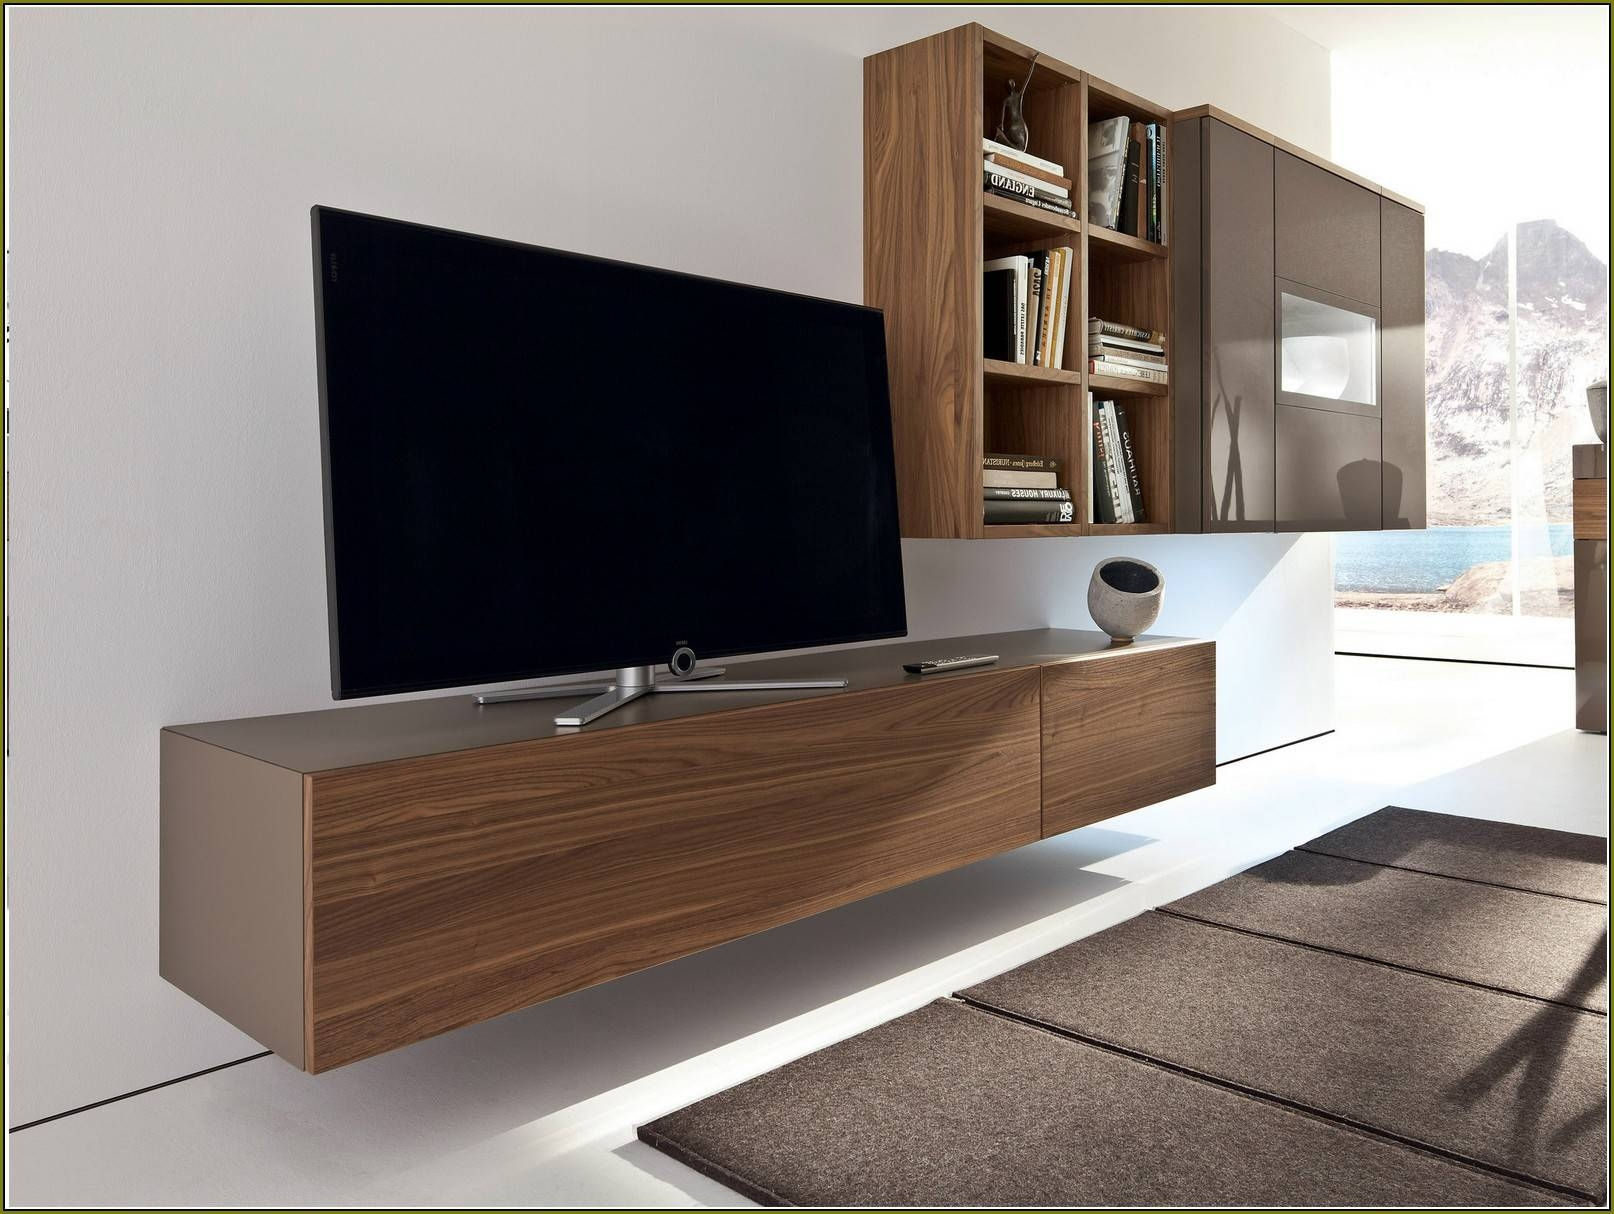 Wall Units: Stunning Wall Tv Cabinet With Doors Wall Mounted Flat Inside Wall Display Units And Tv Cabinets (View 11 of 15)